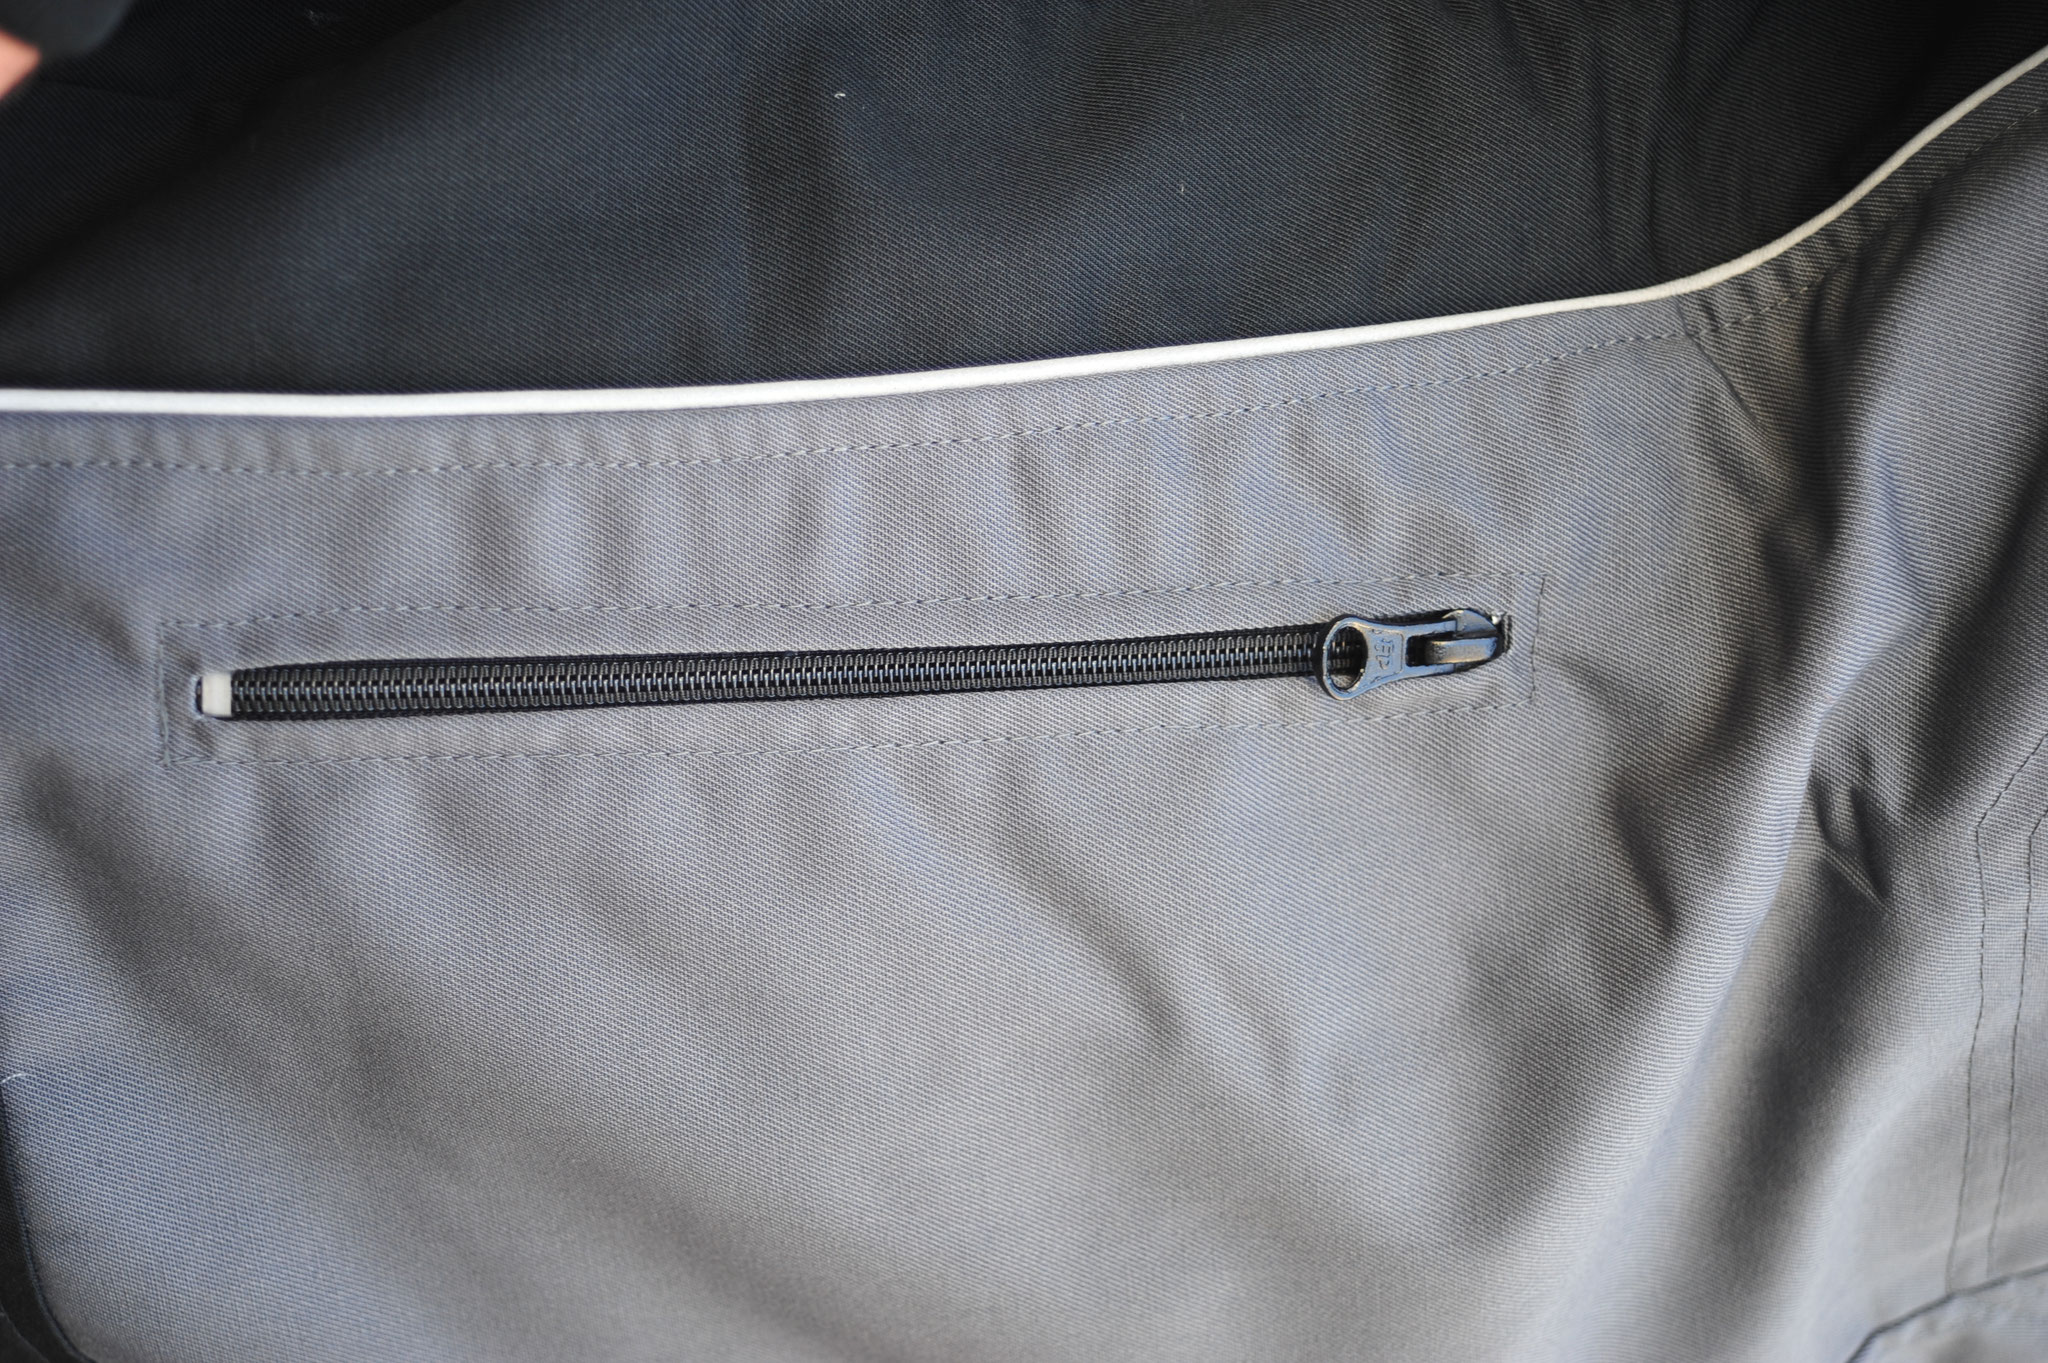 Durable zippers